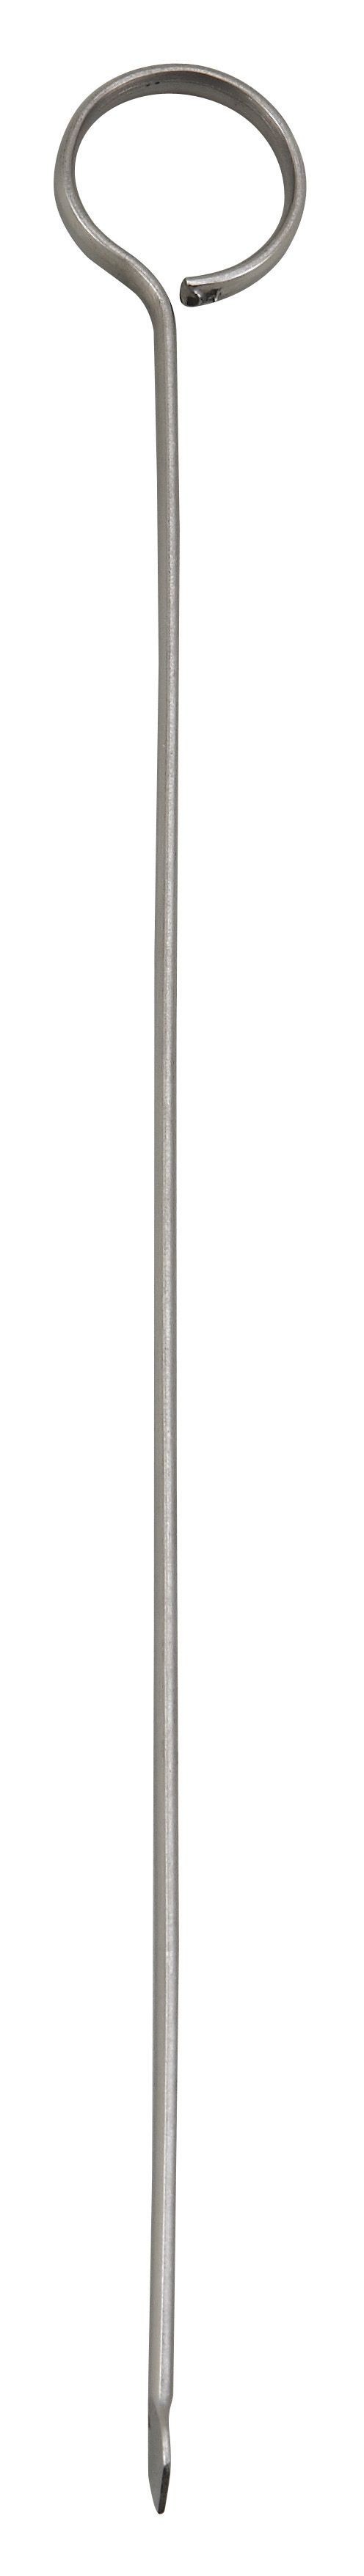 Oval-Tipped Stainless Steel Skewer - 10